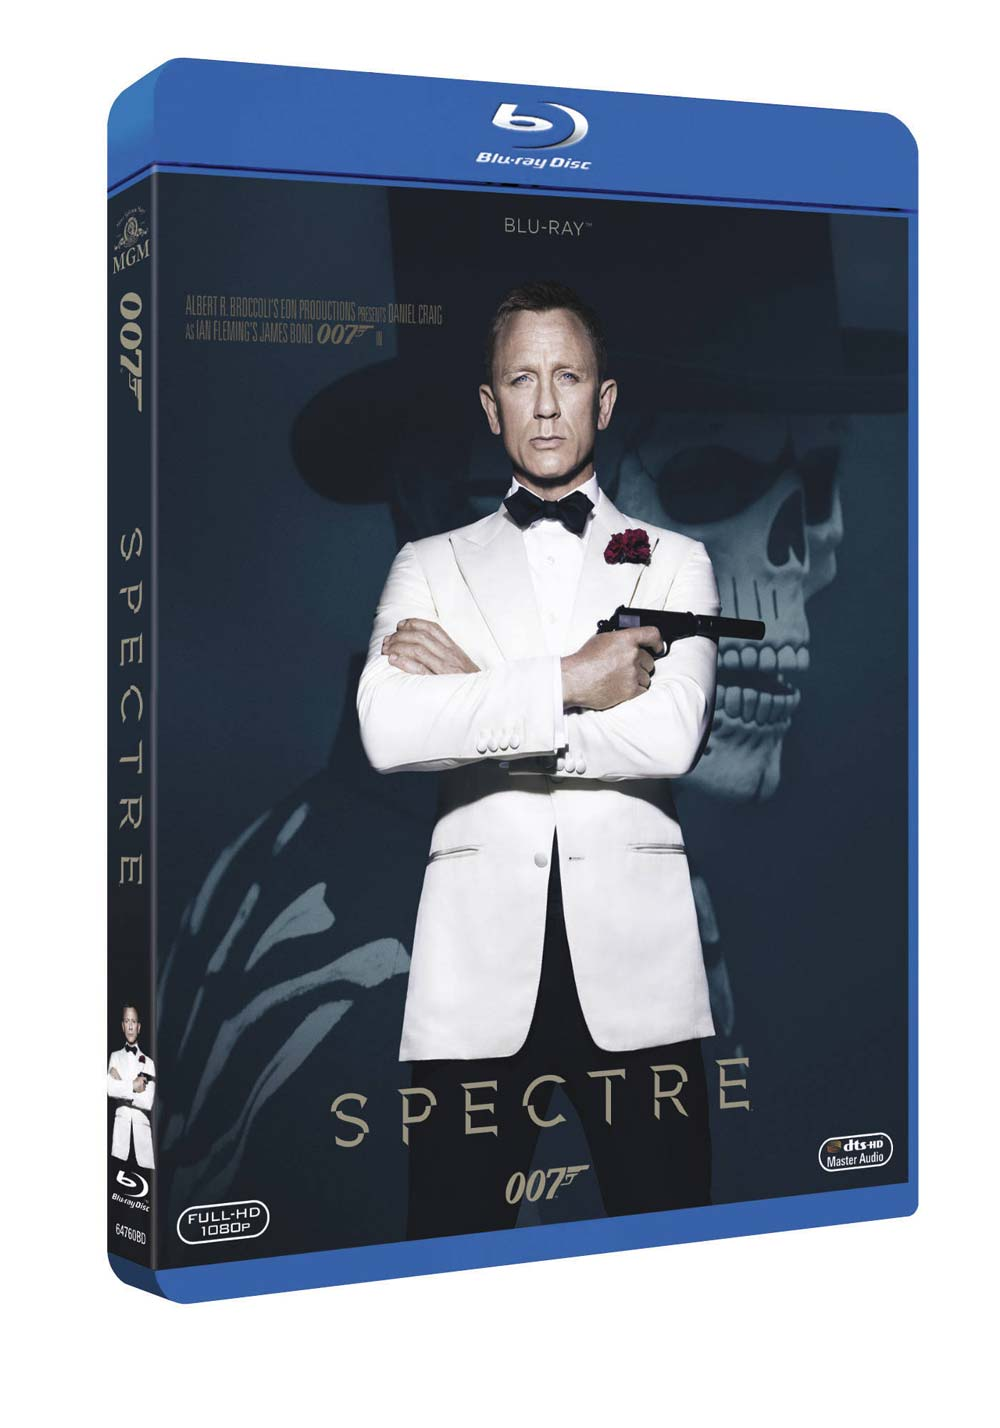 007 James Bond - Spectre (2015)